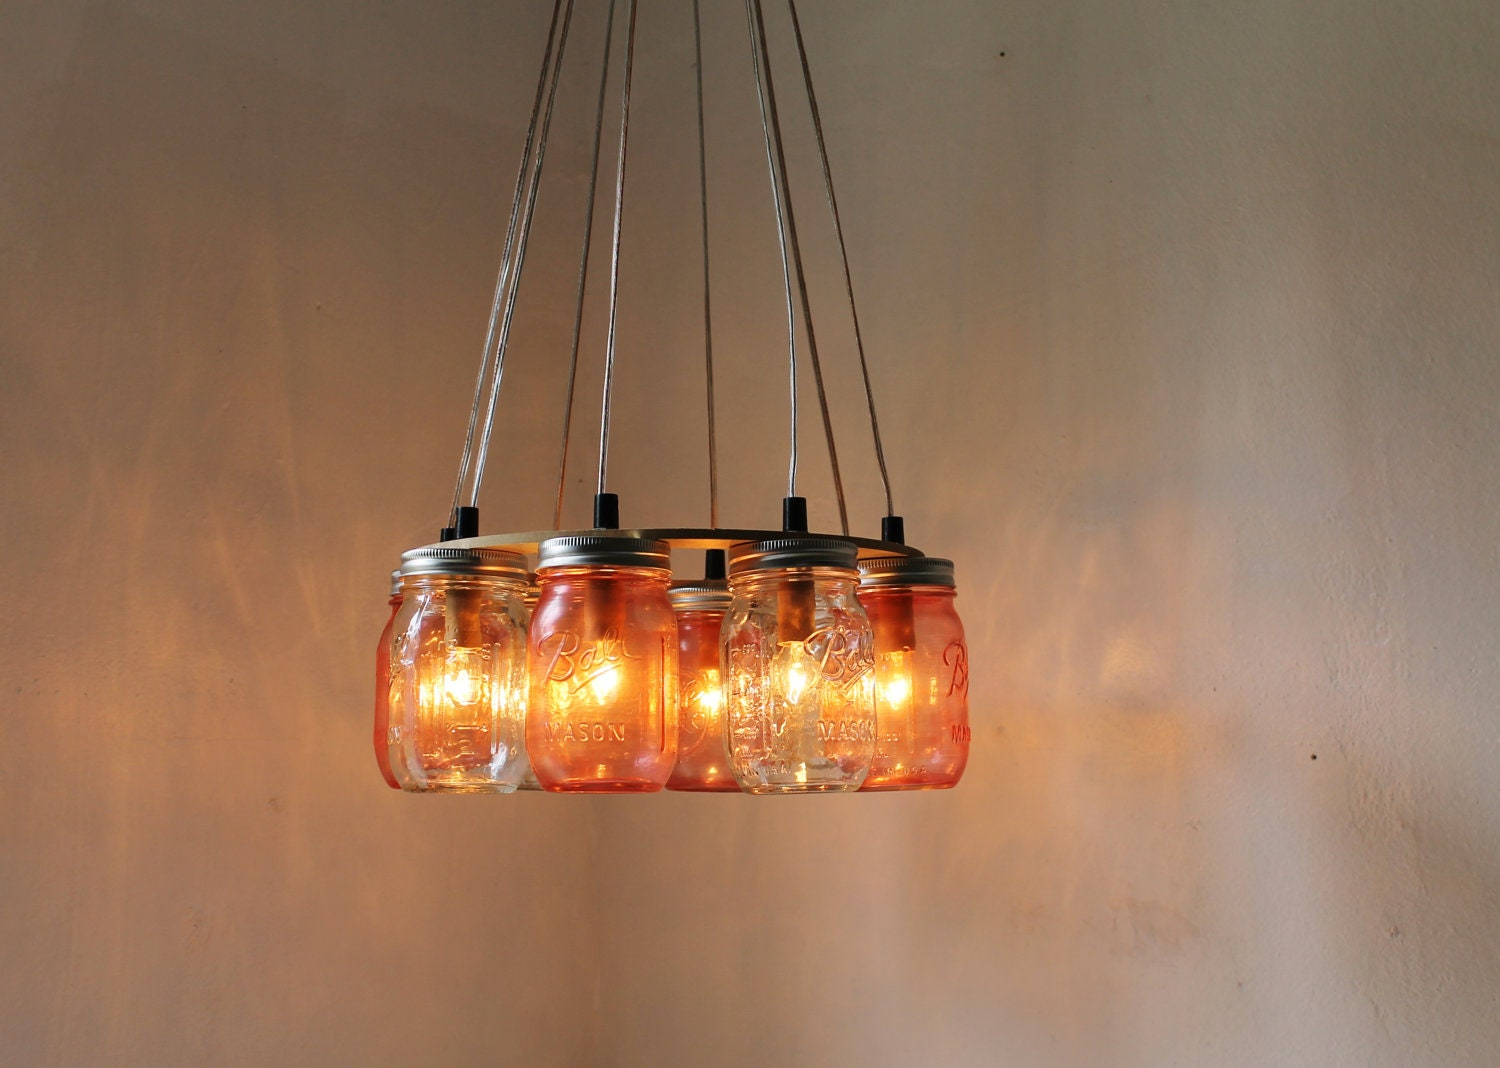 Pink Party Mason Jar Chandelier - Upcycled Hanging Mason Jar Lighting Fixture Direct Hardwire - BootsNGus Lamps Rustic Home Decor - BootsNGus